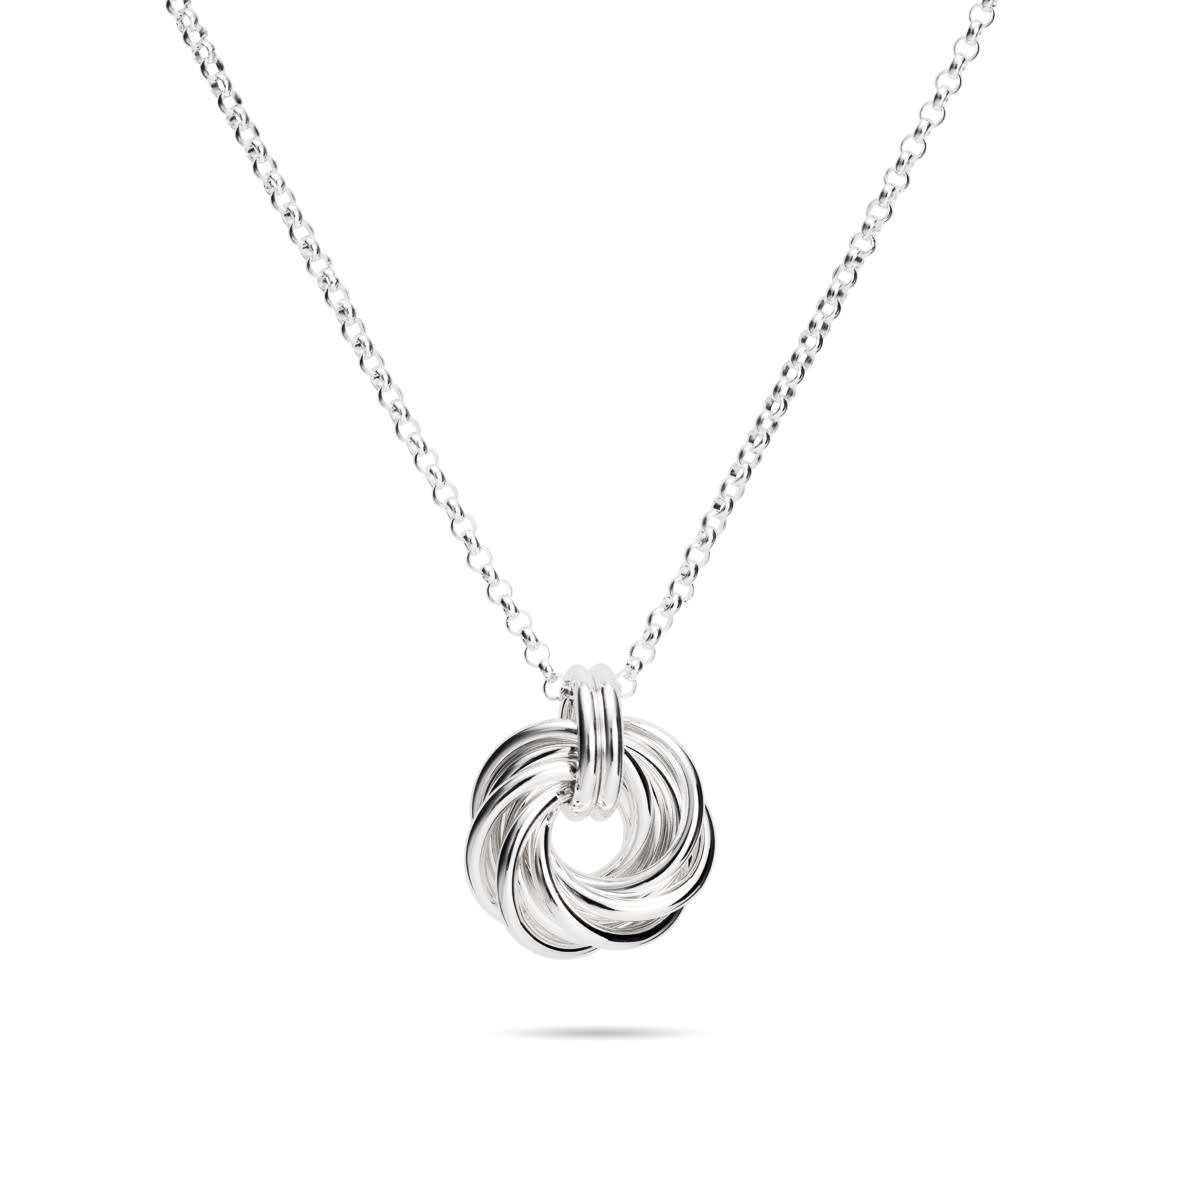 Mikel Grant Jewelry Love Knot Necklace